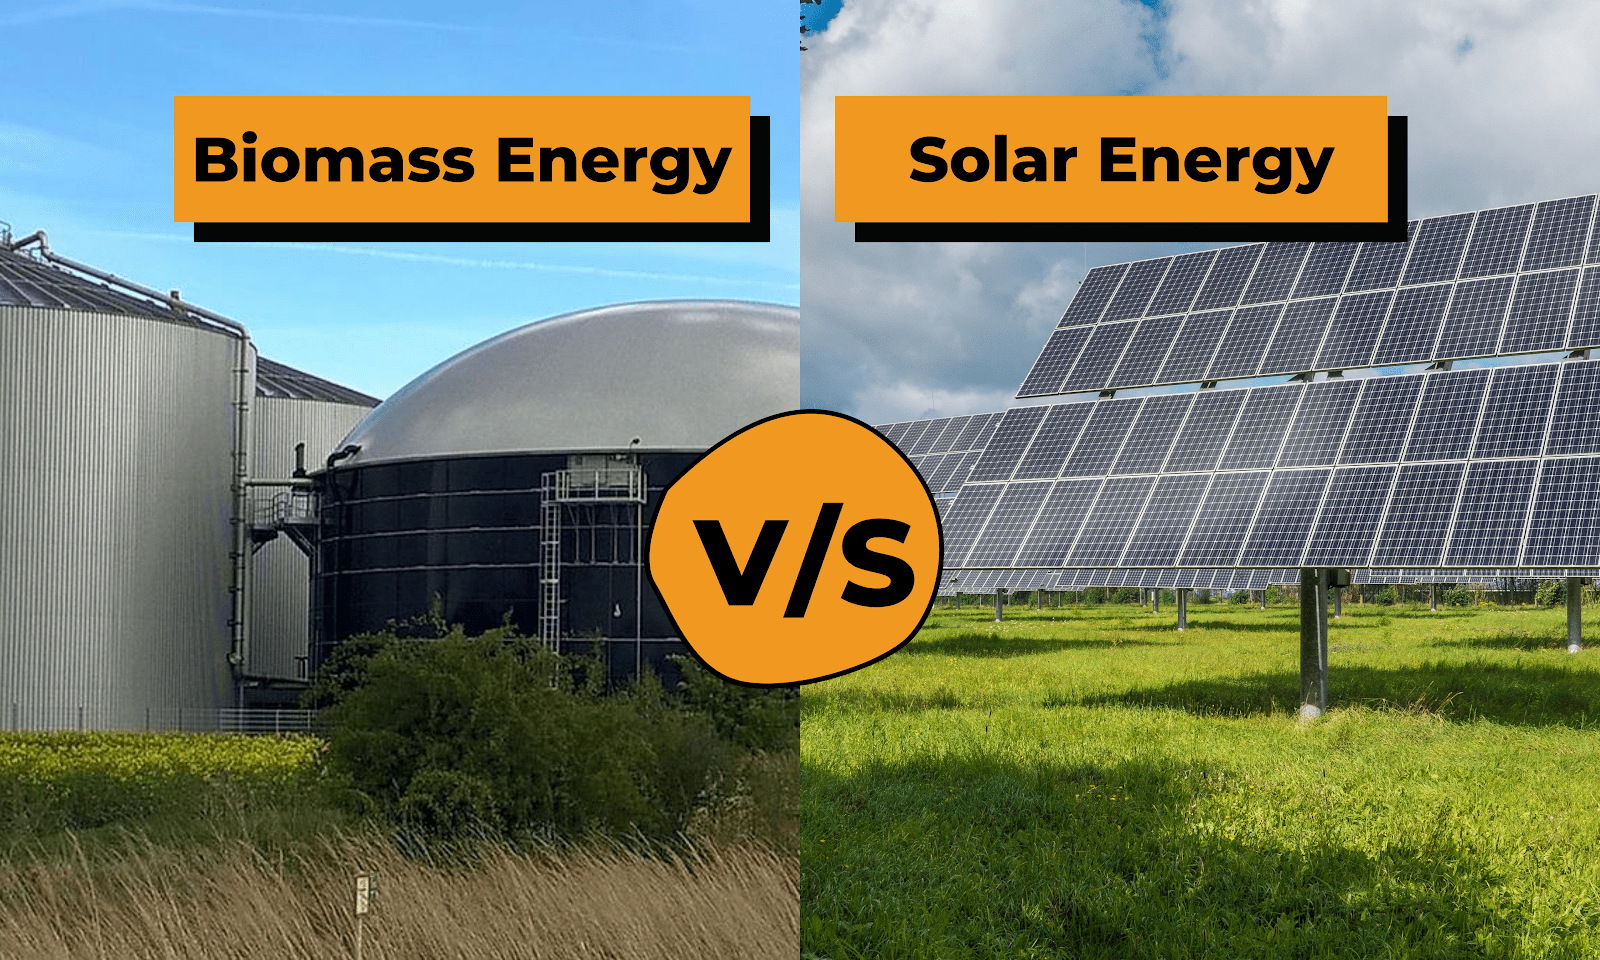 Biomass Vs Solar Energy: Which one is better?